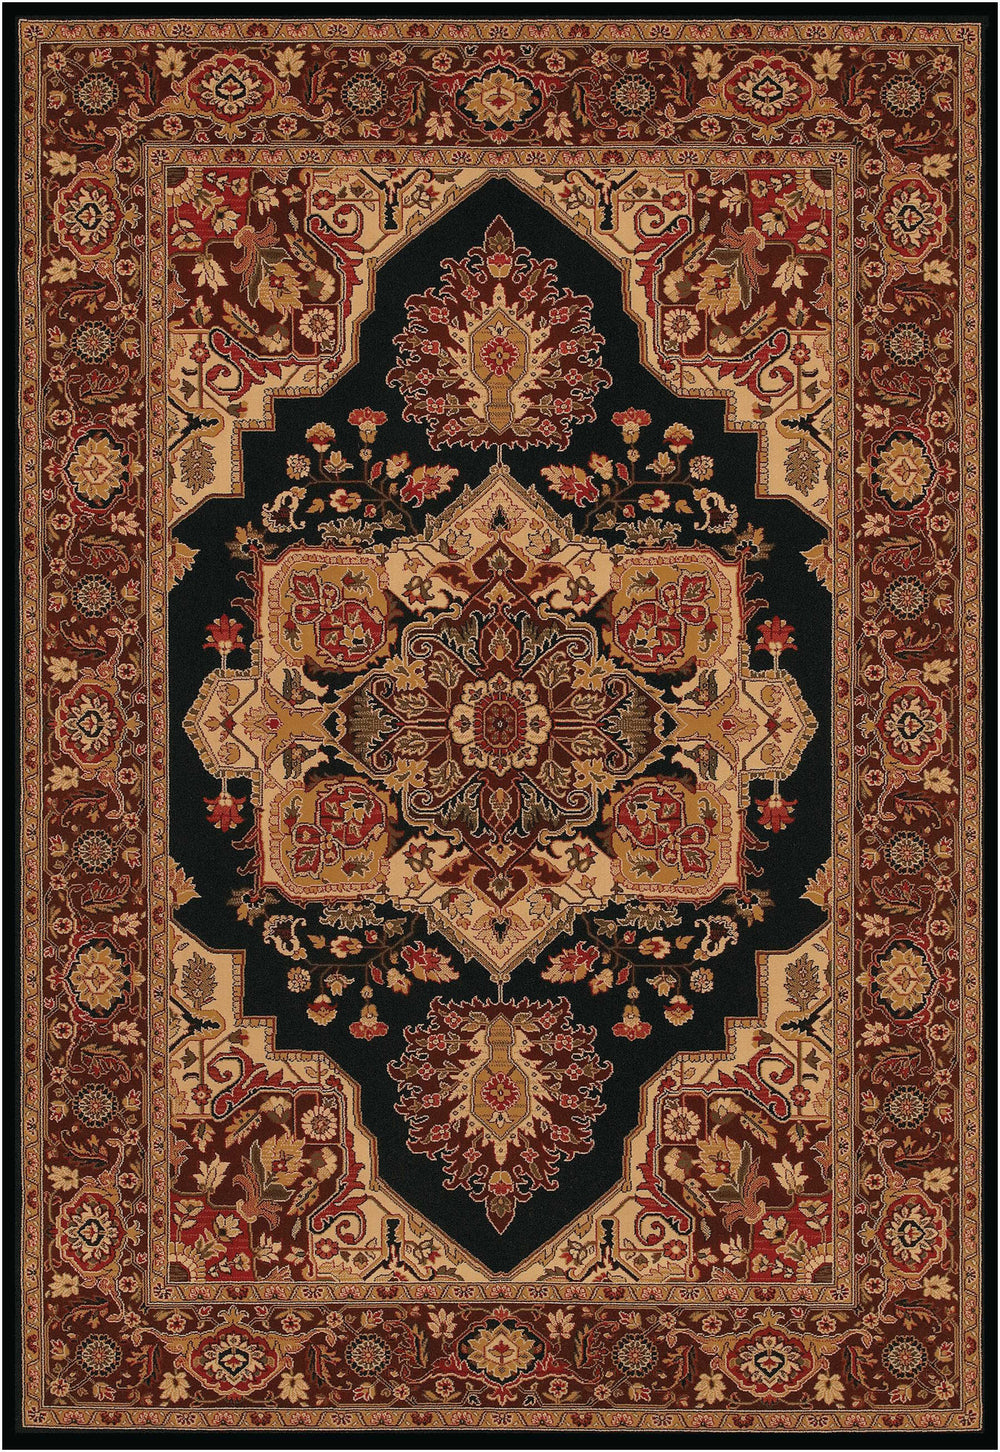 Couristan Everest Antique Sarouk Area Rug